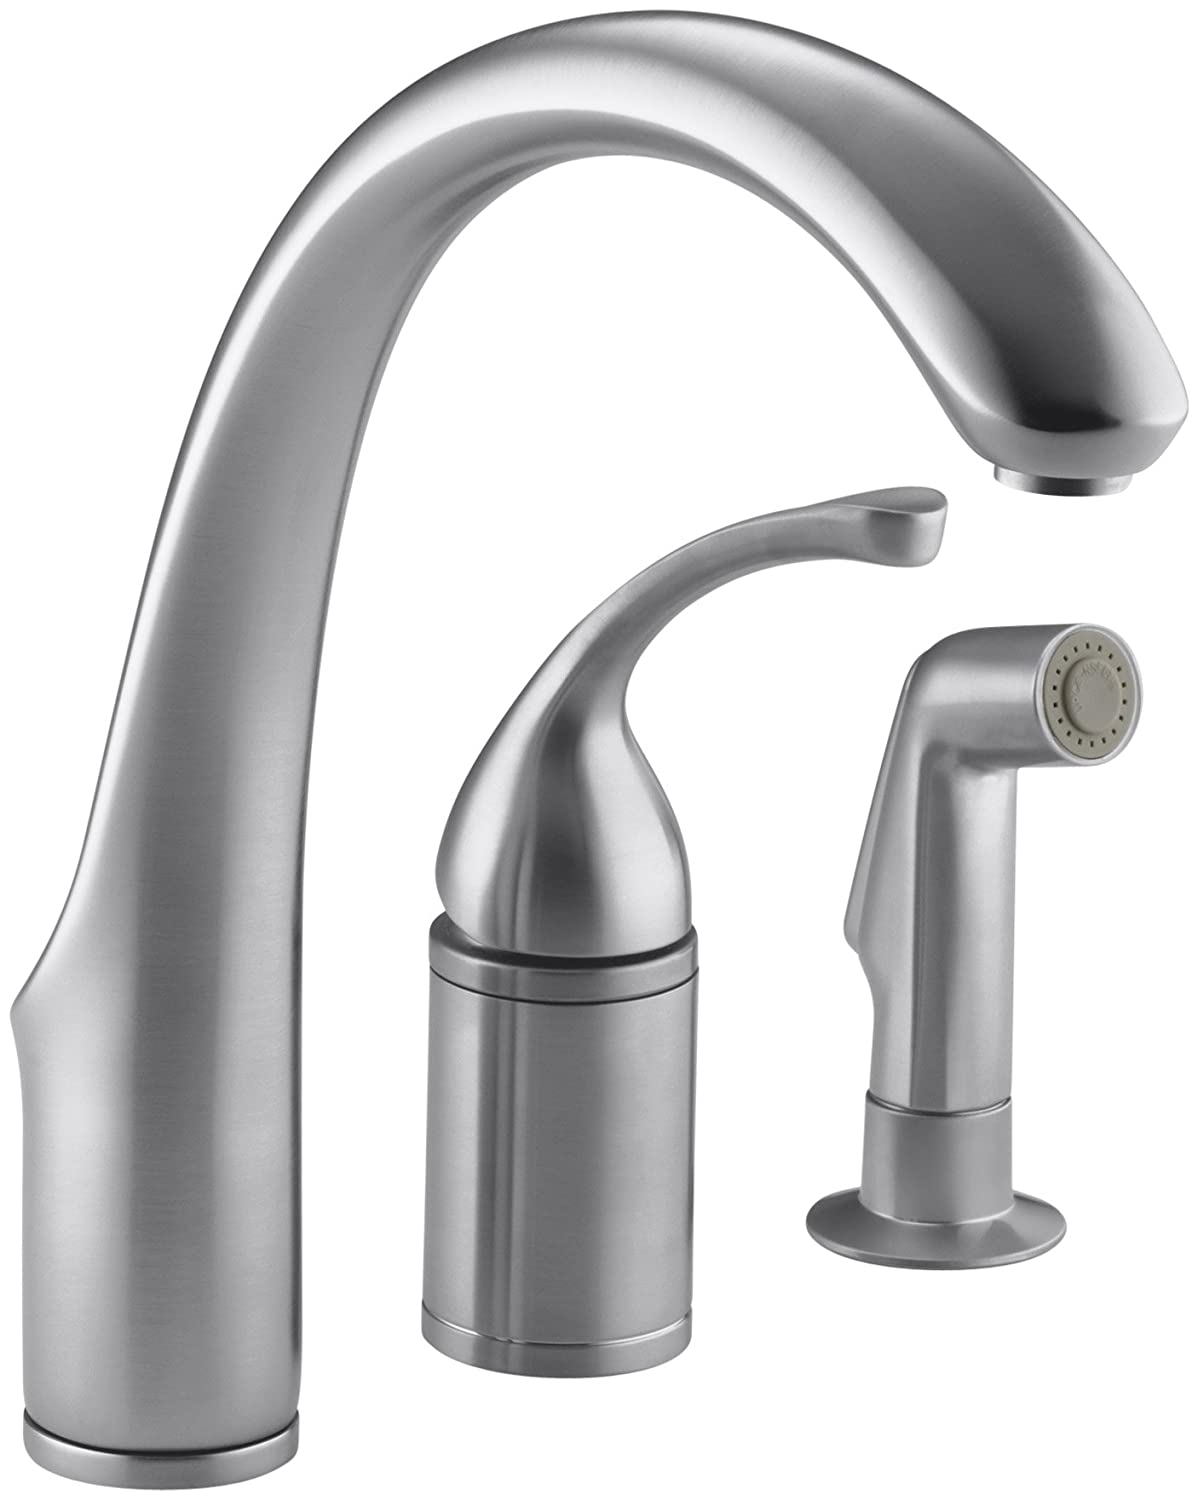 KOHLER K-10430-G Forte Single Control Remote Valve Kitchen Sink Faucet with Sidespray and Lever Handle, Brushed Chrome